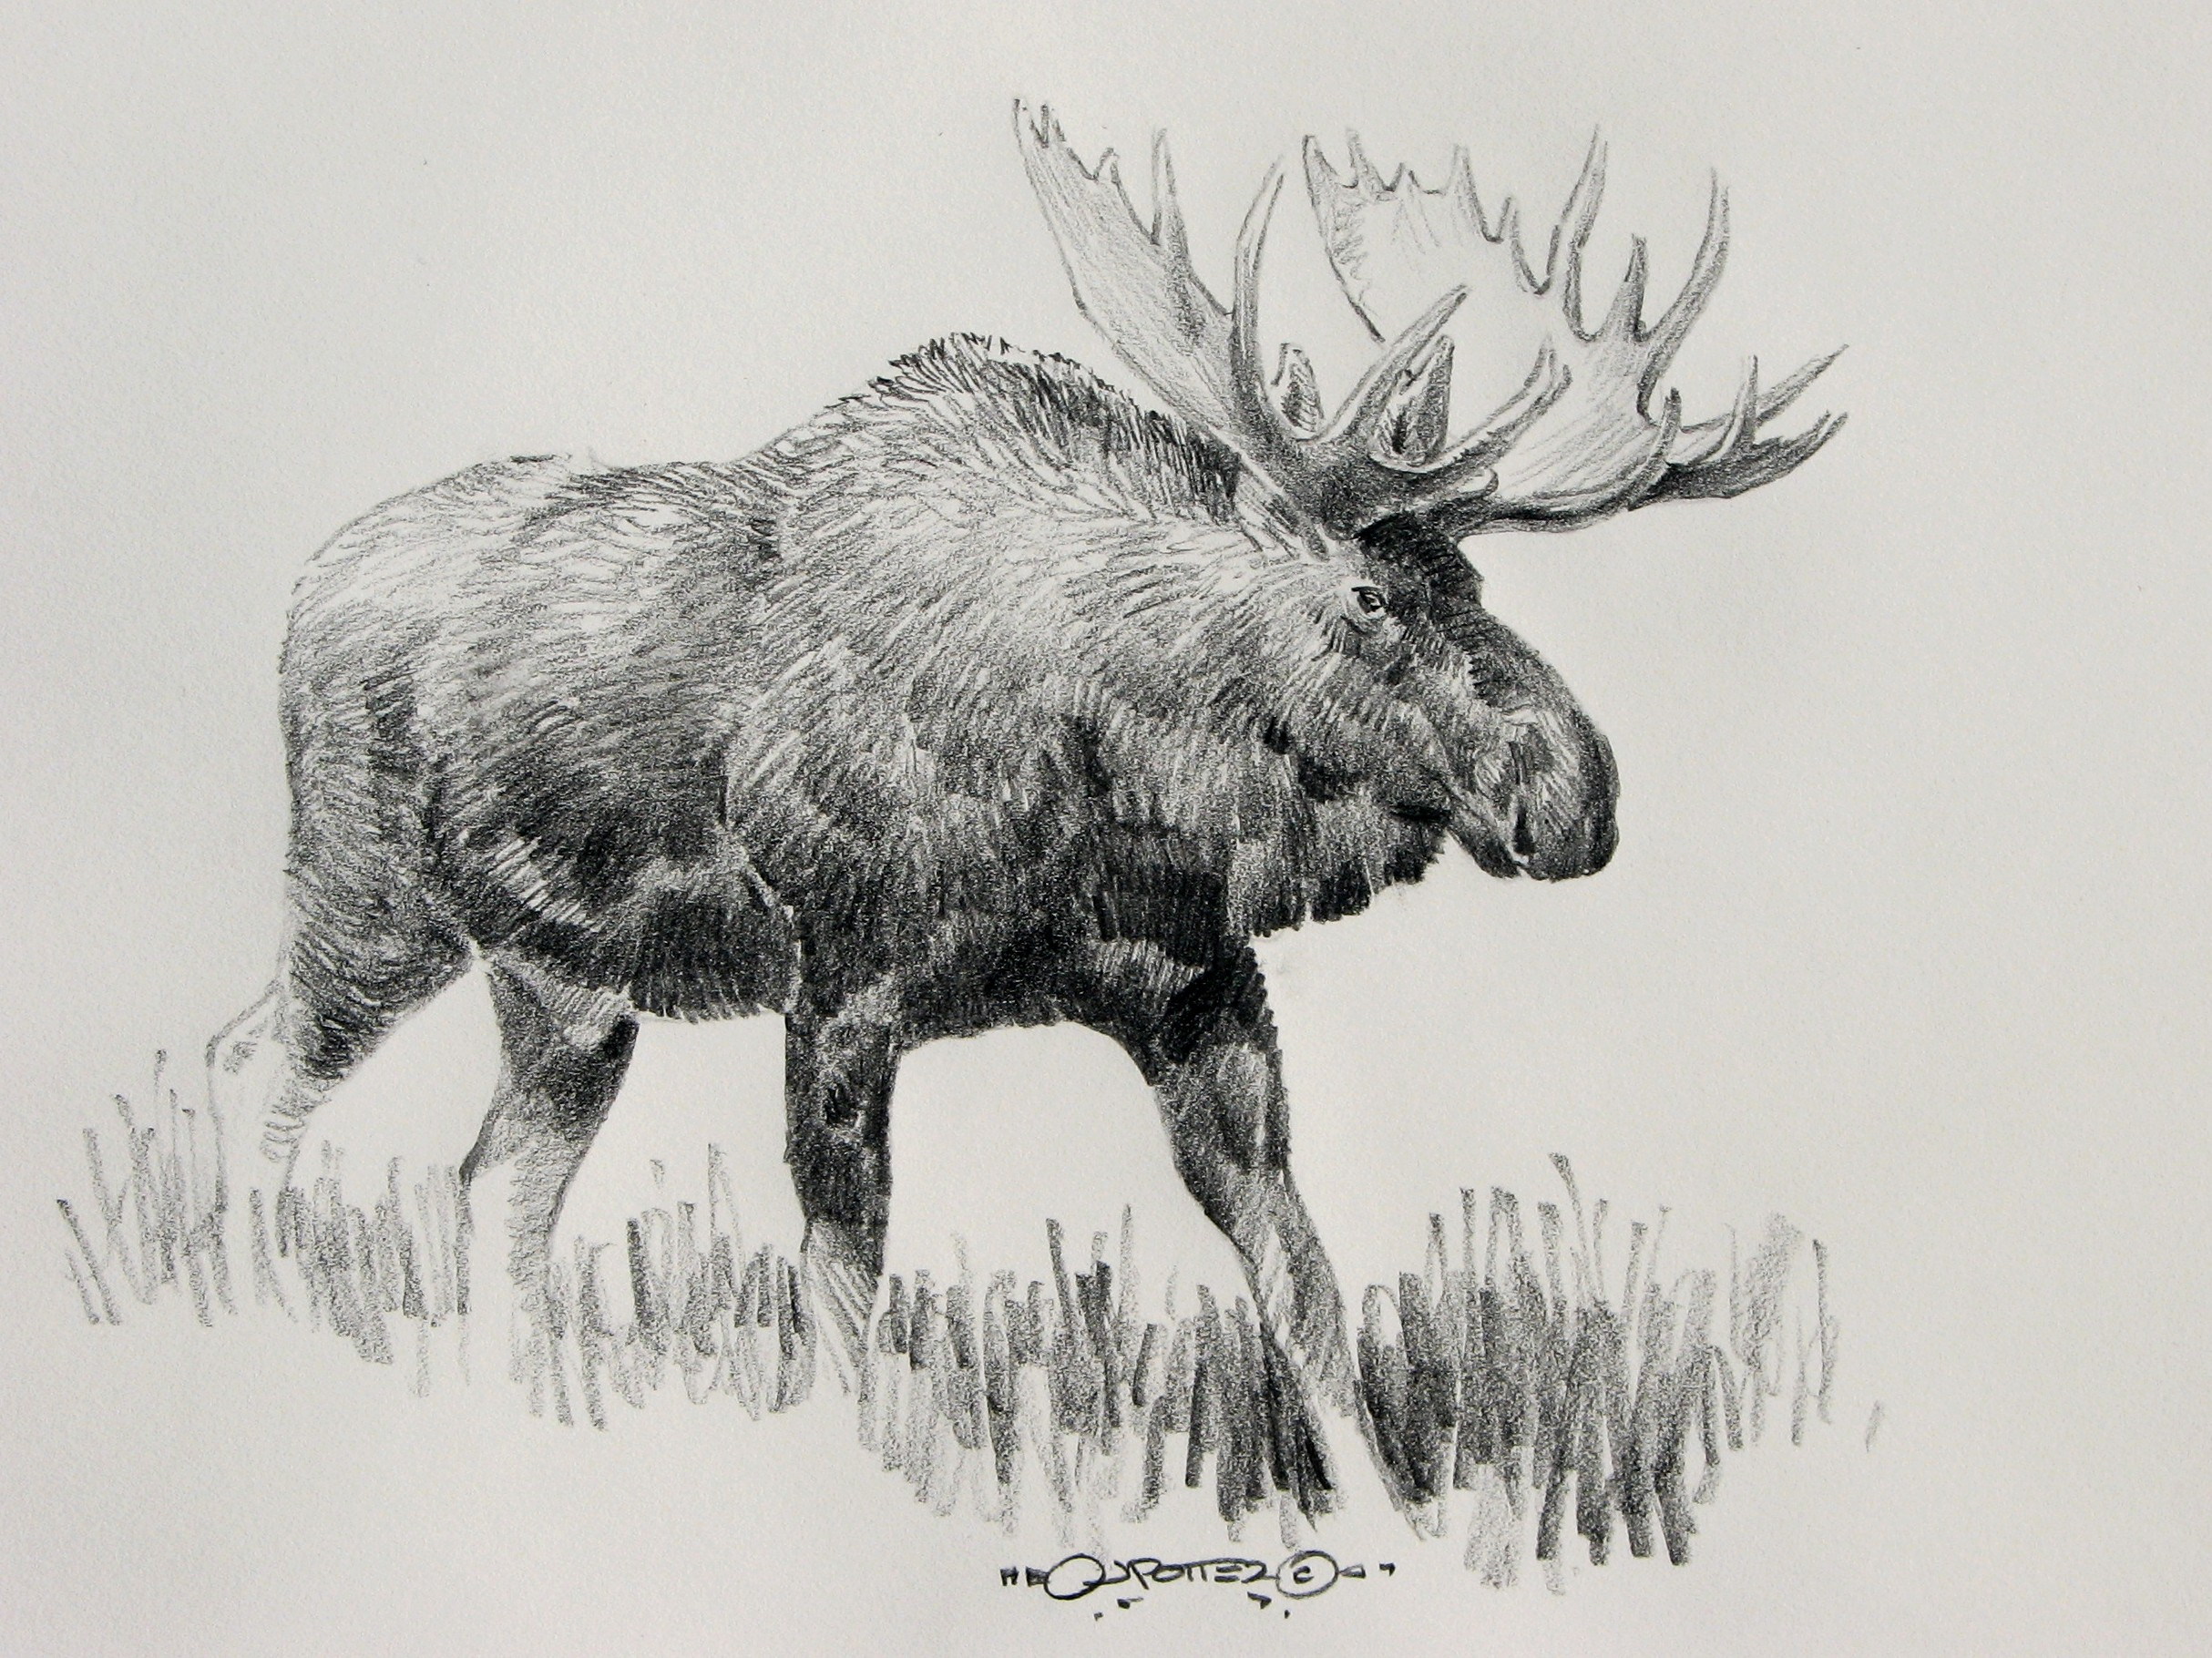 Drawn moose Drawings Moose